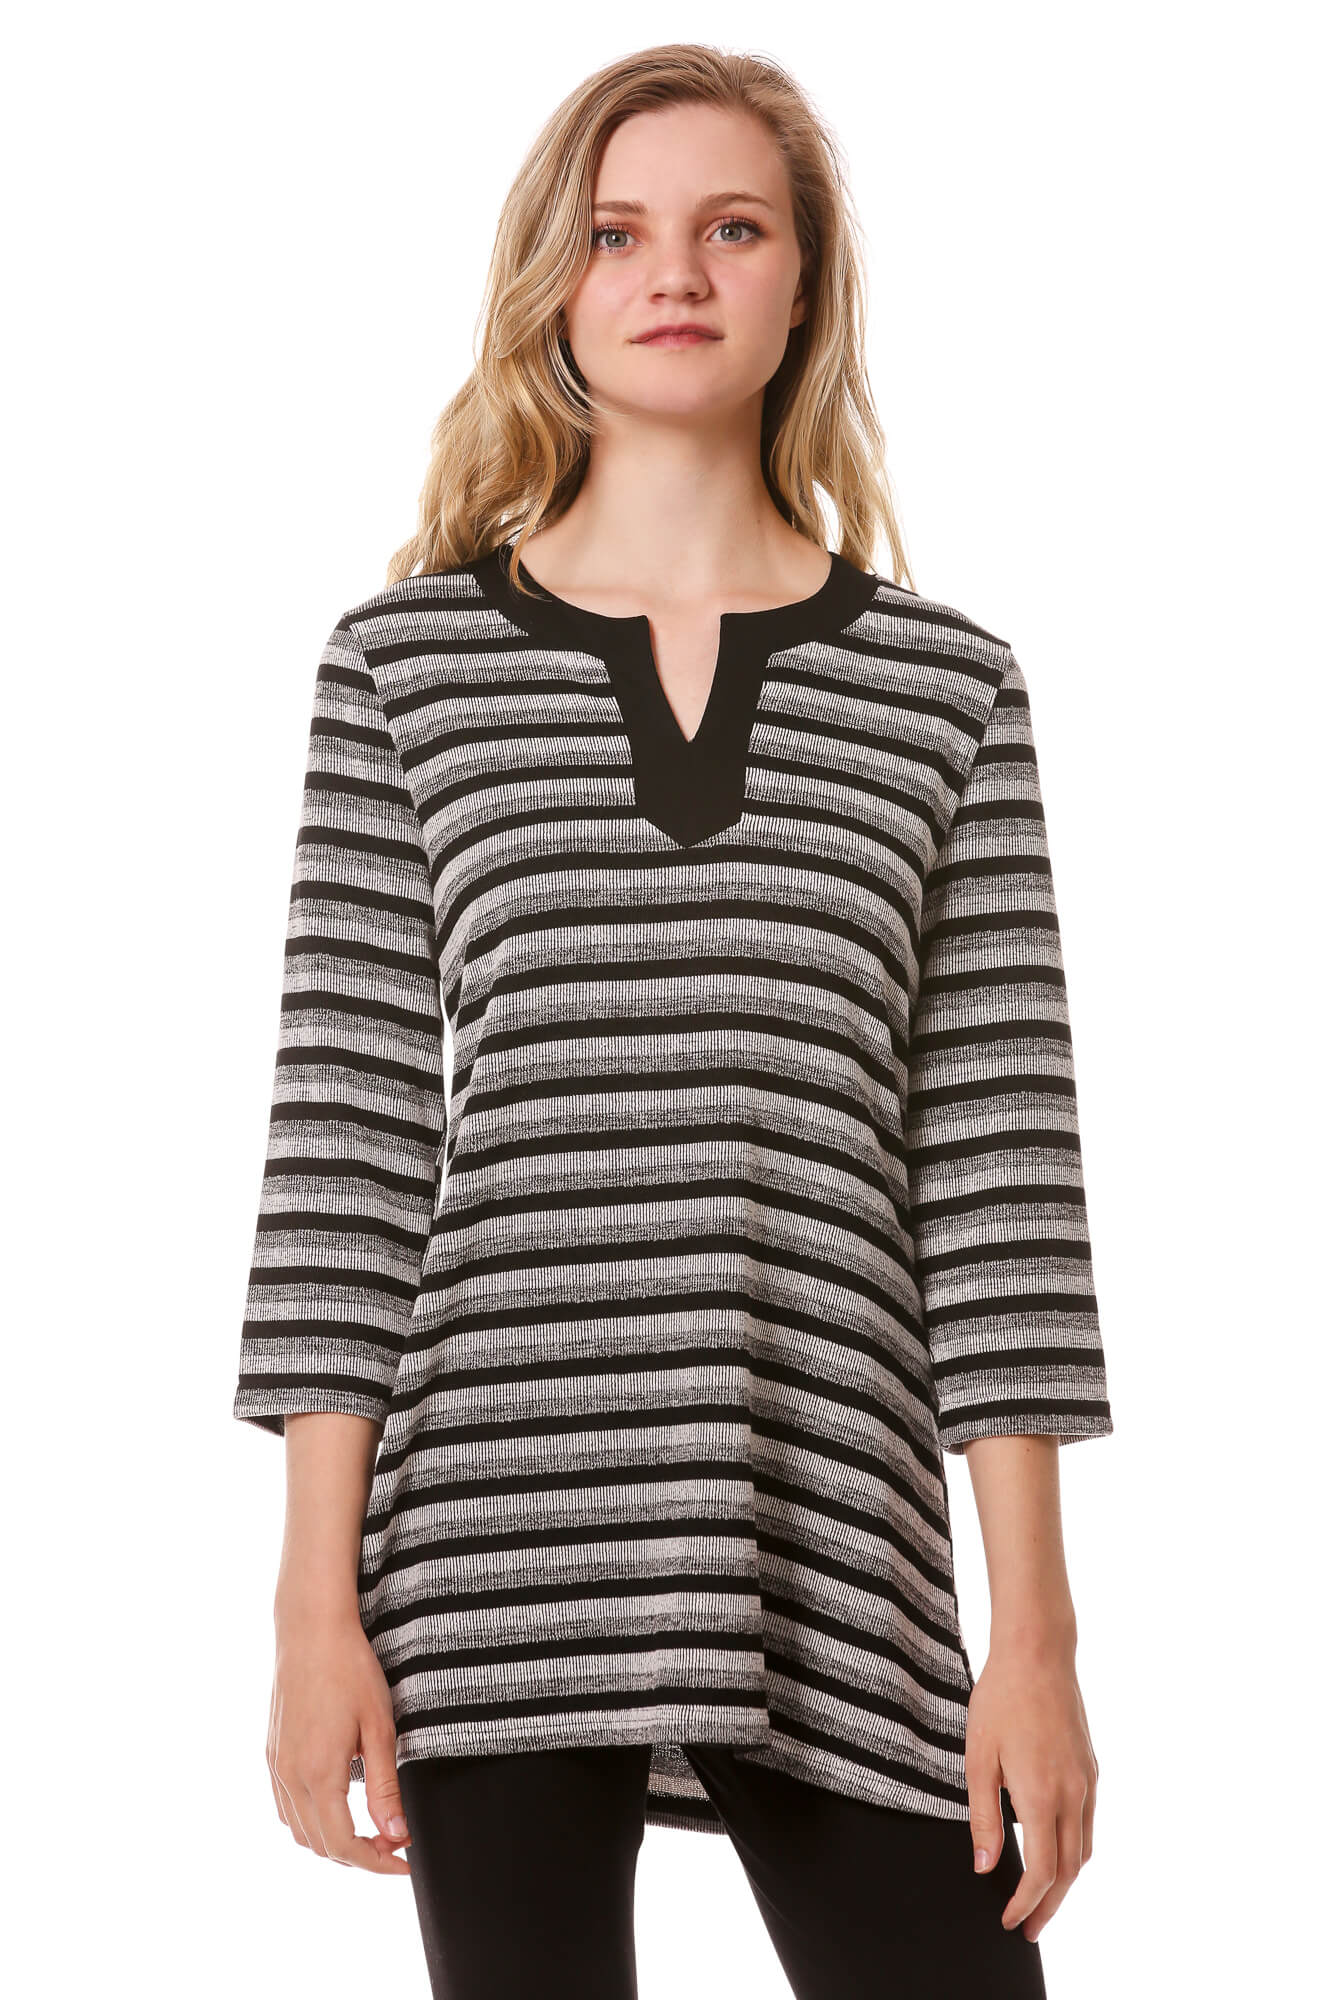 Women's Striped Djellaba Neckline Tunic | V Neck Top 3/4 Sleeves | Neesha Fashion